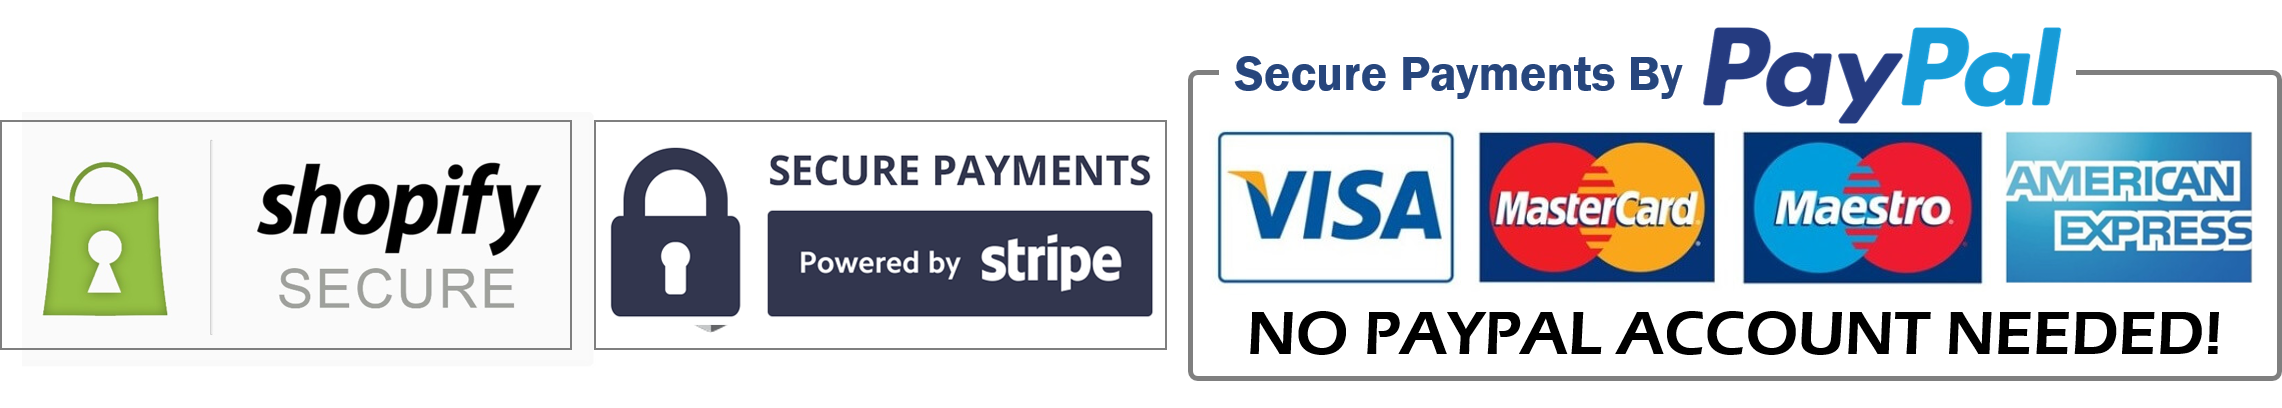 Shopify Secure Payment - Click to Verify